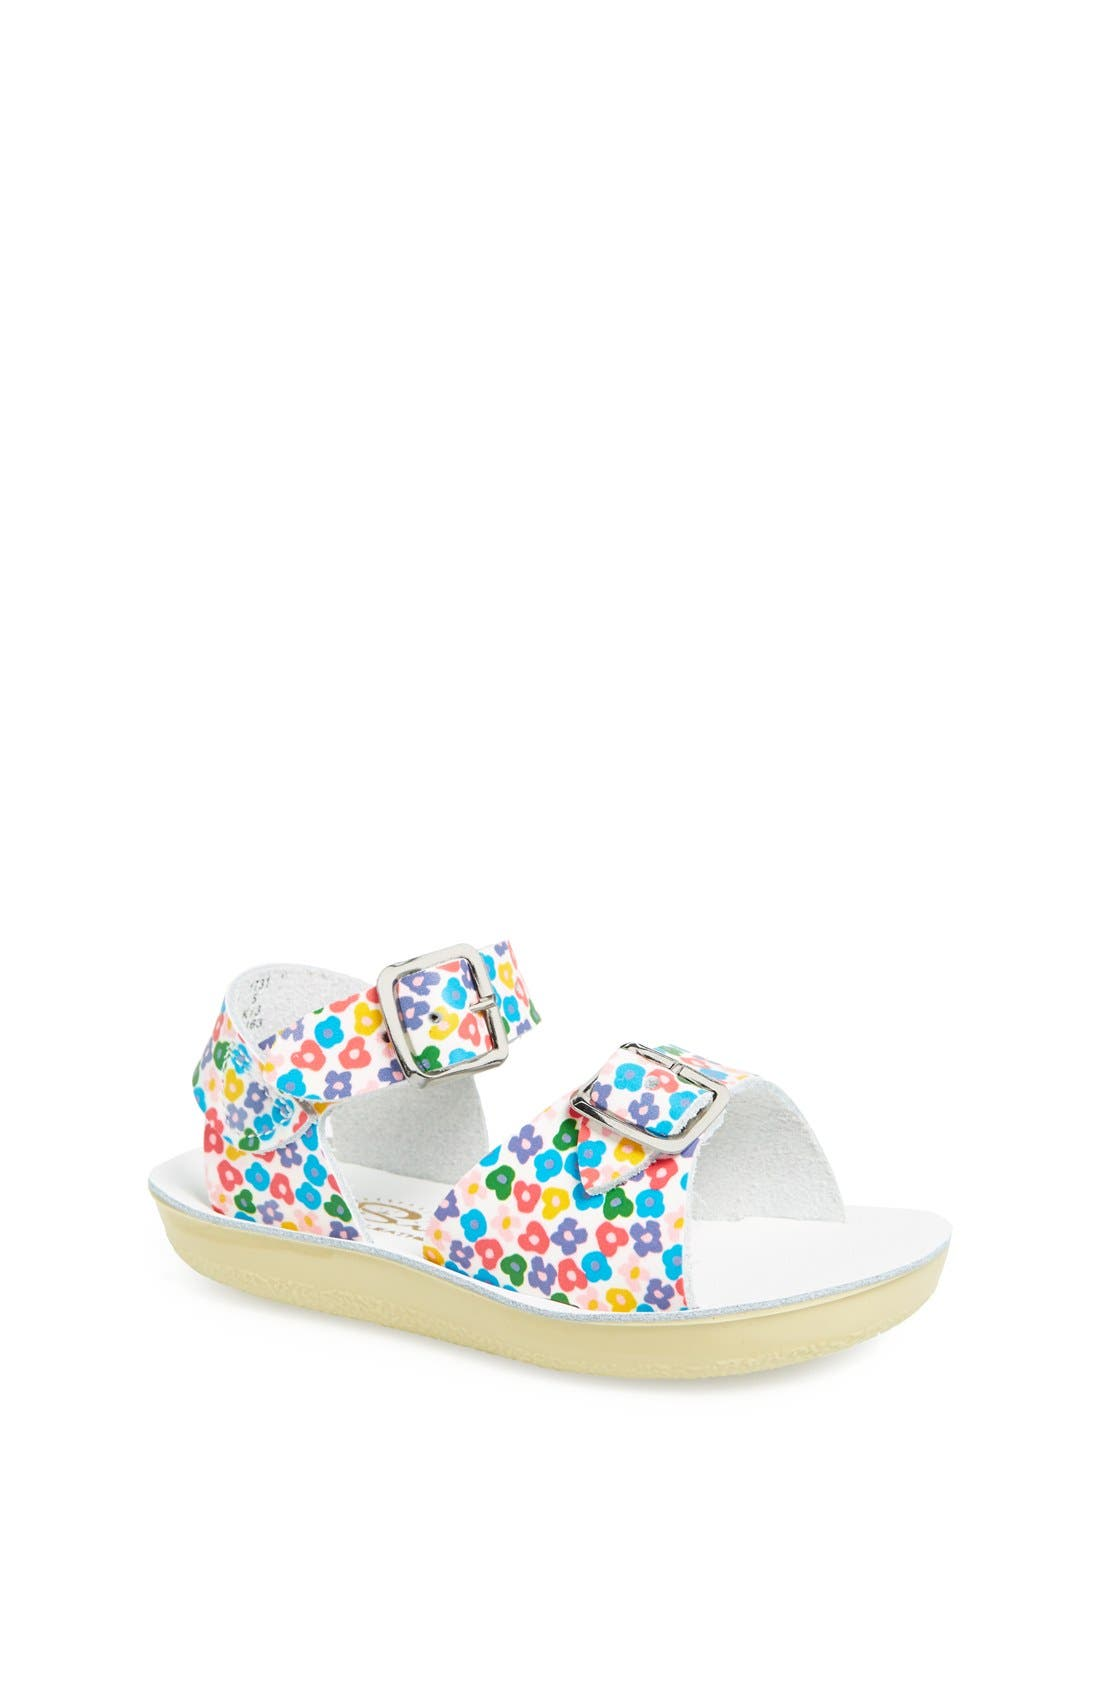 Salt Water Sandals by Hoy 'Surfer' Sandal (Baby & Walker)